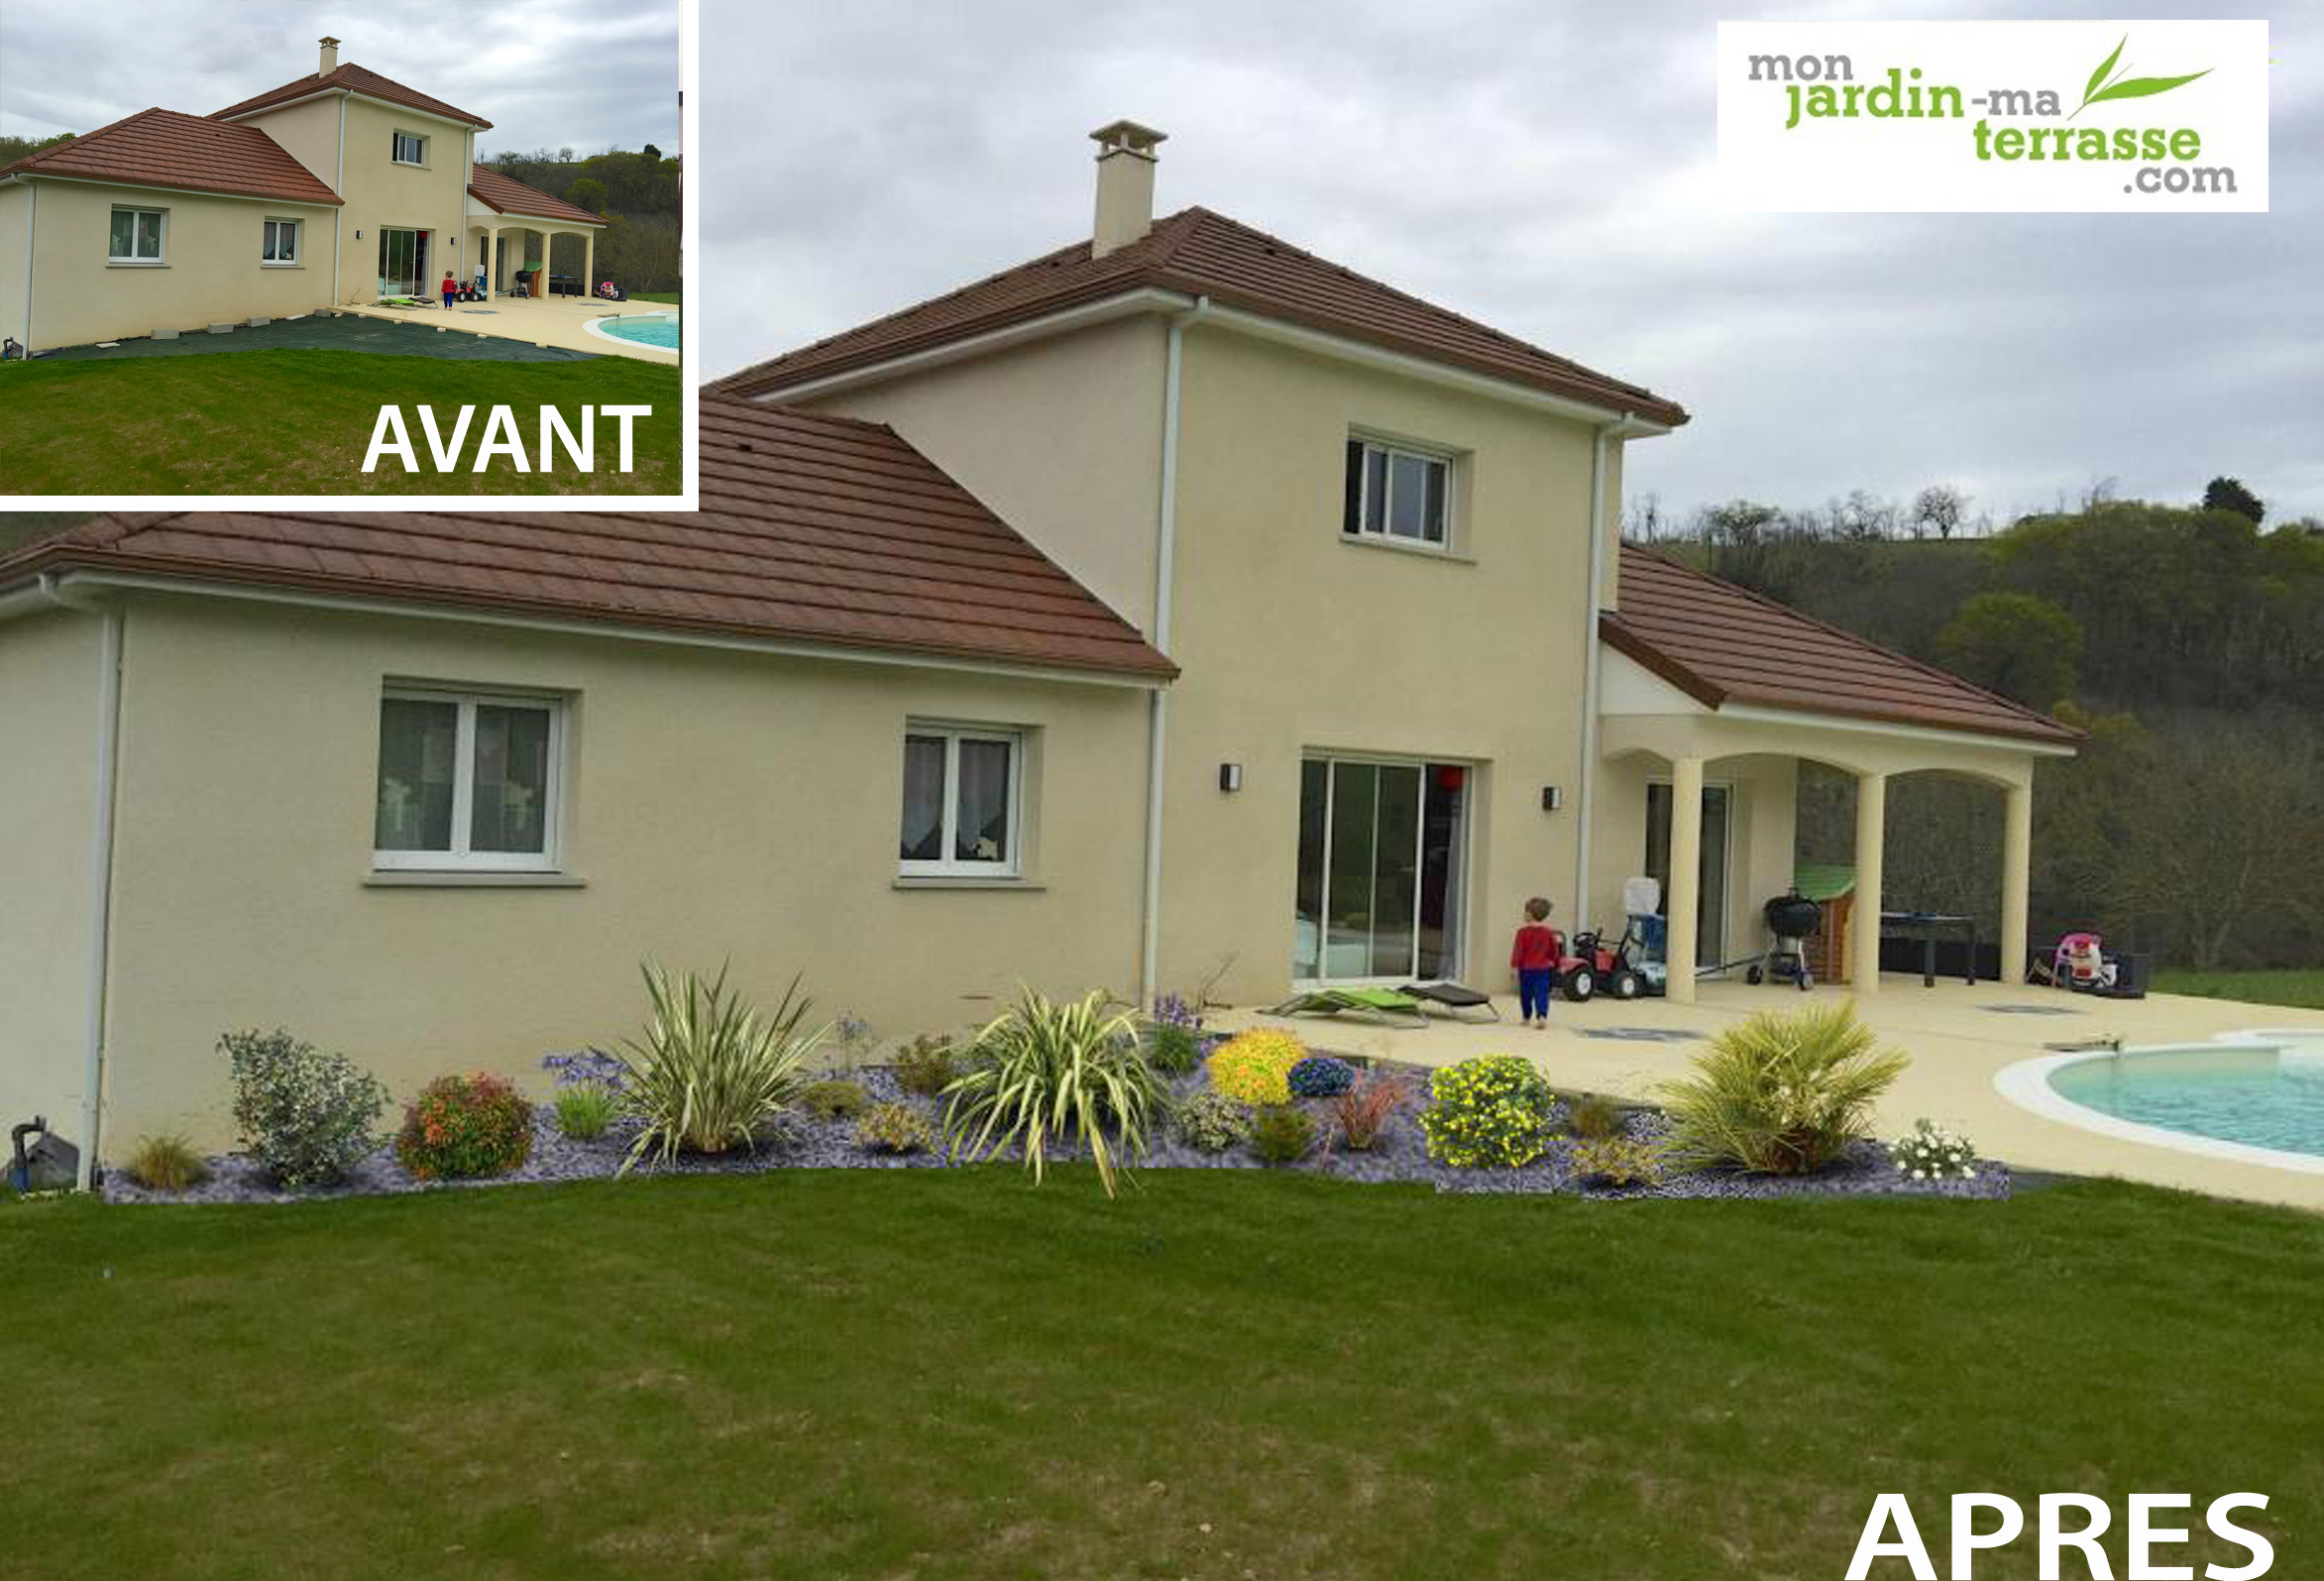 Am nagement ext rieur devant une maison monjardin for Maison amenagement exterieur